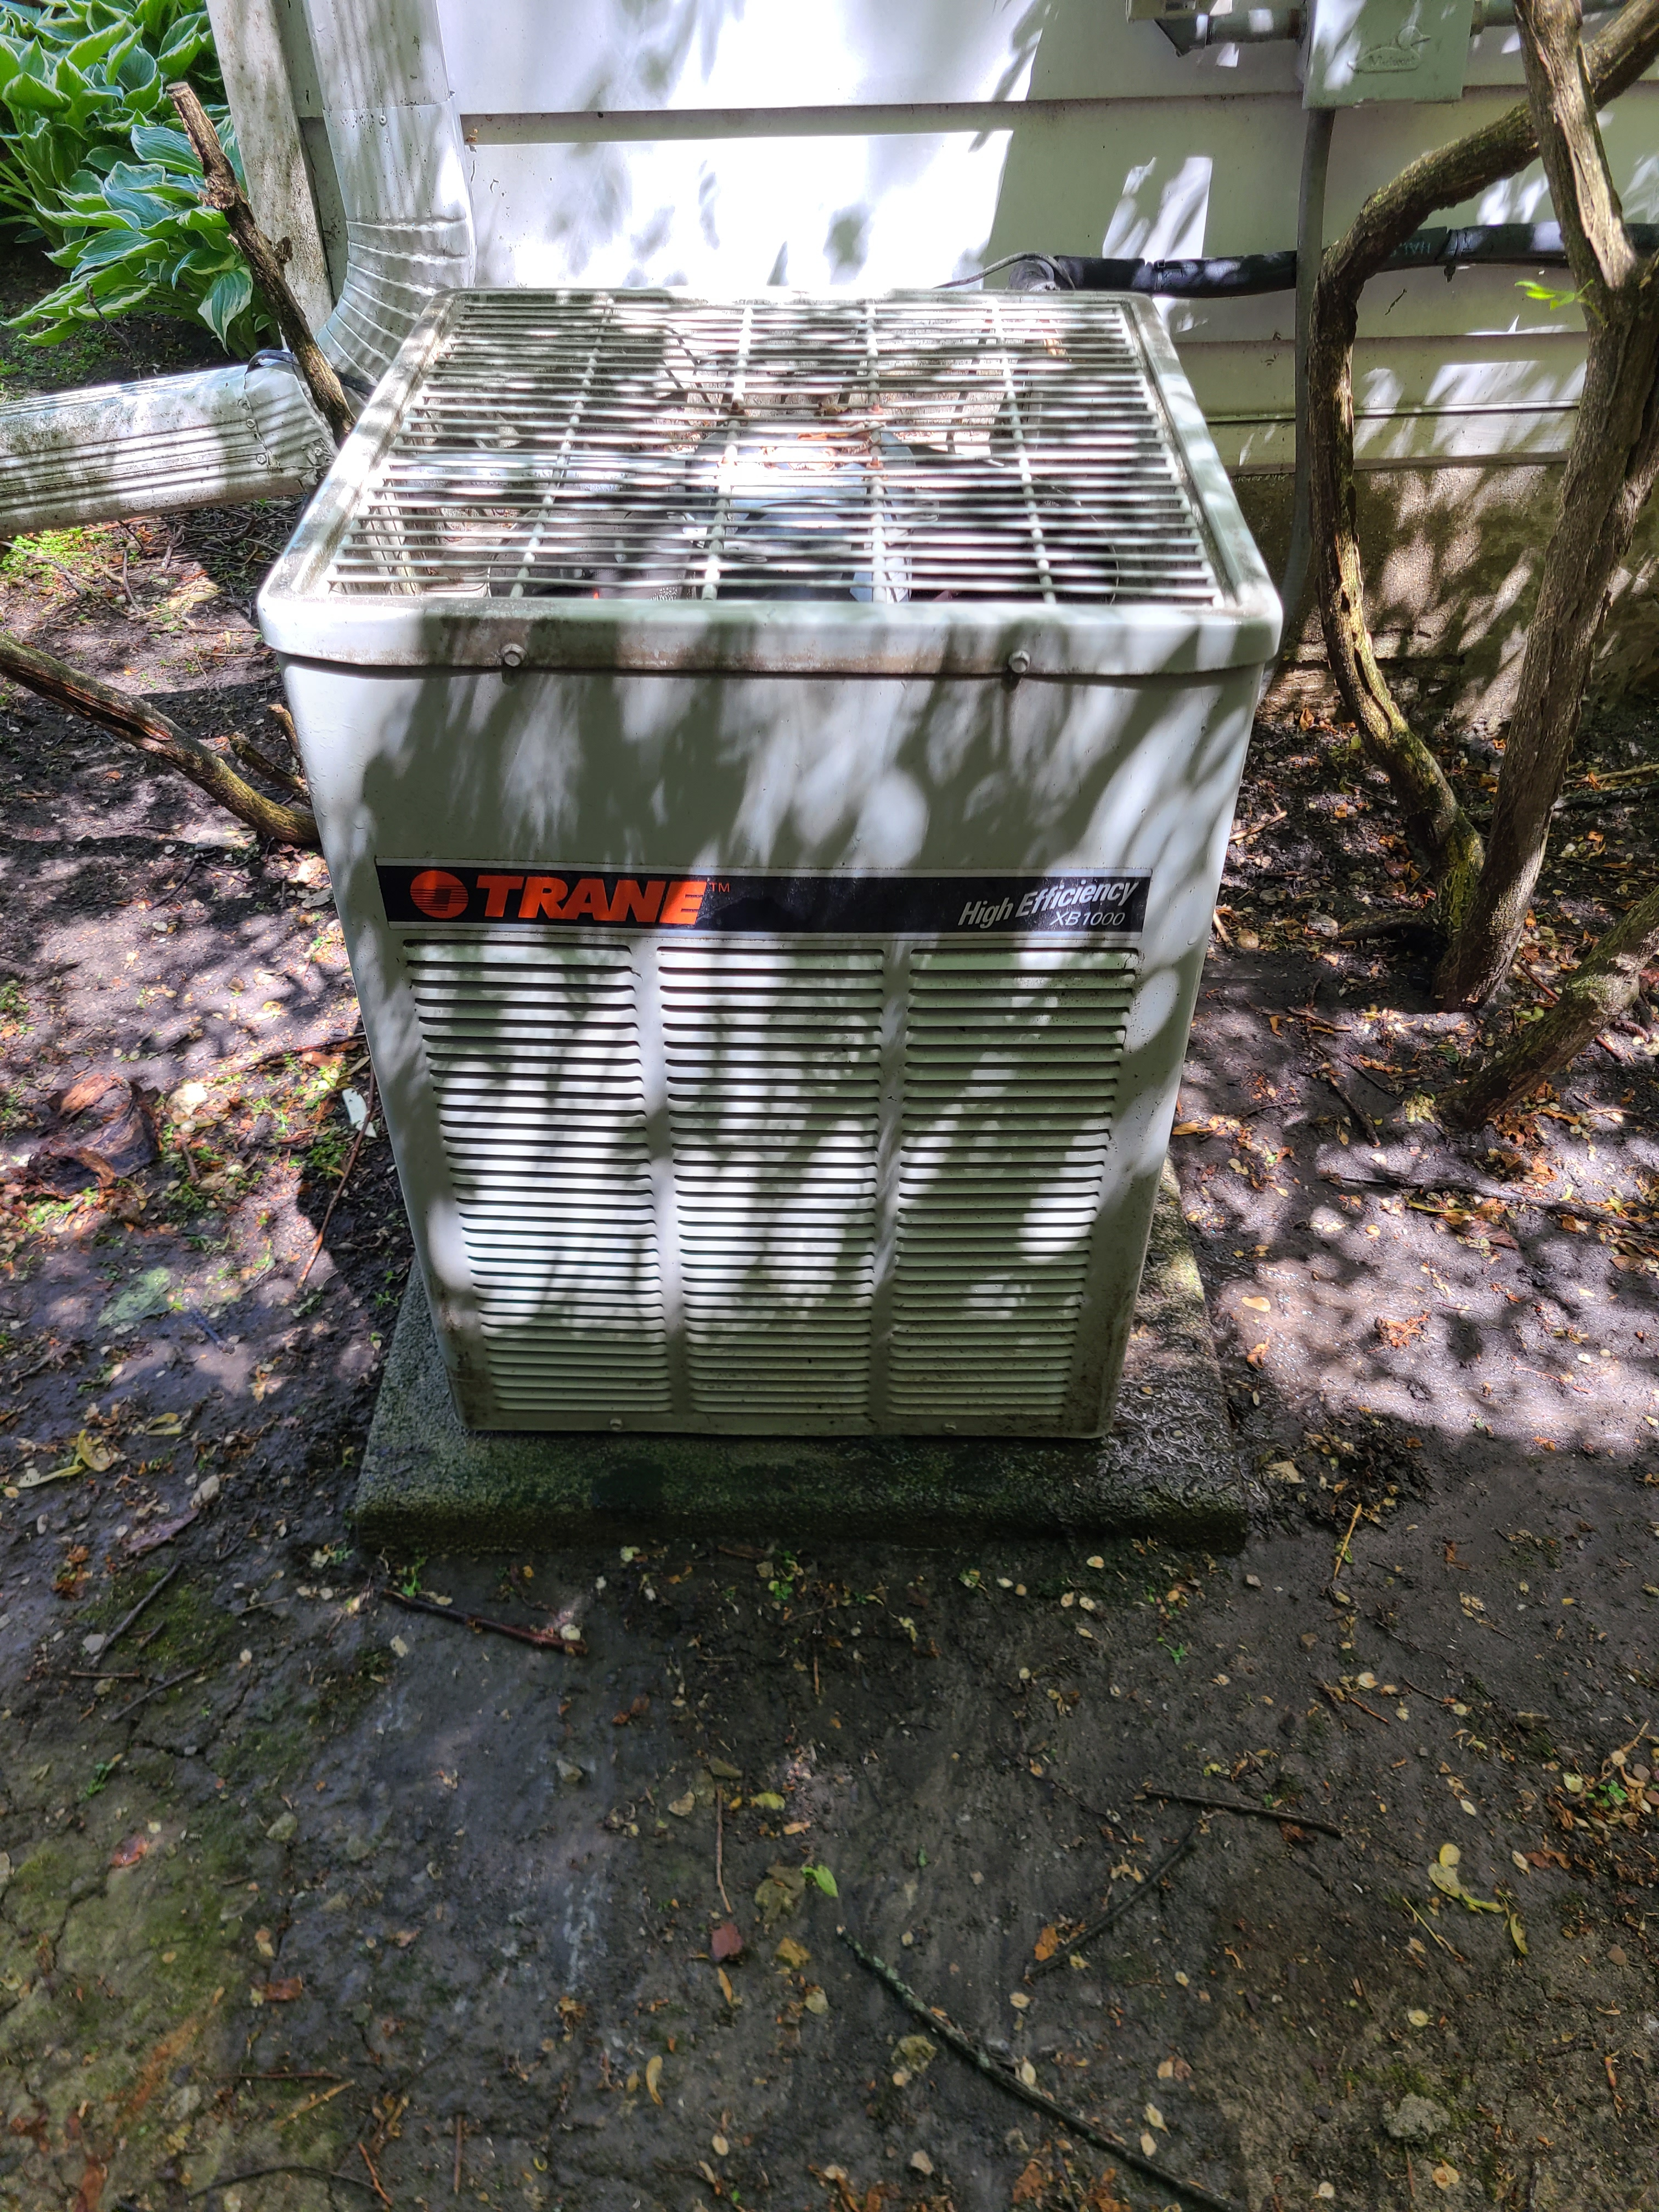 Trane r22 system...old but functional...recommendation replacement unit